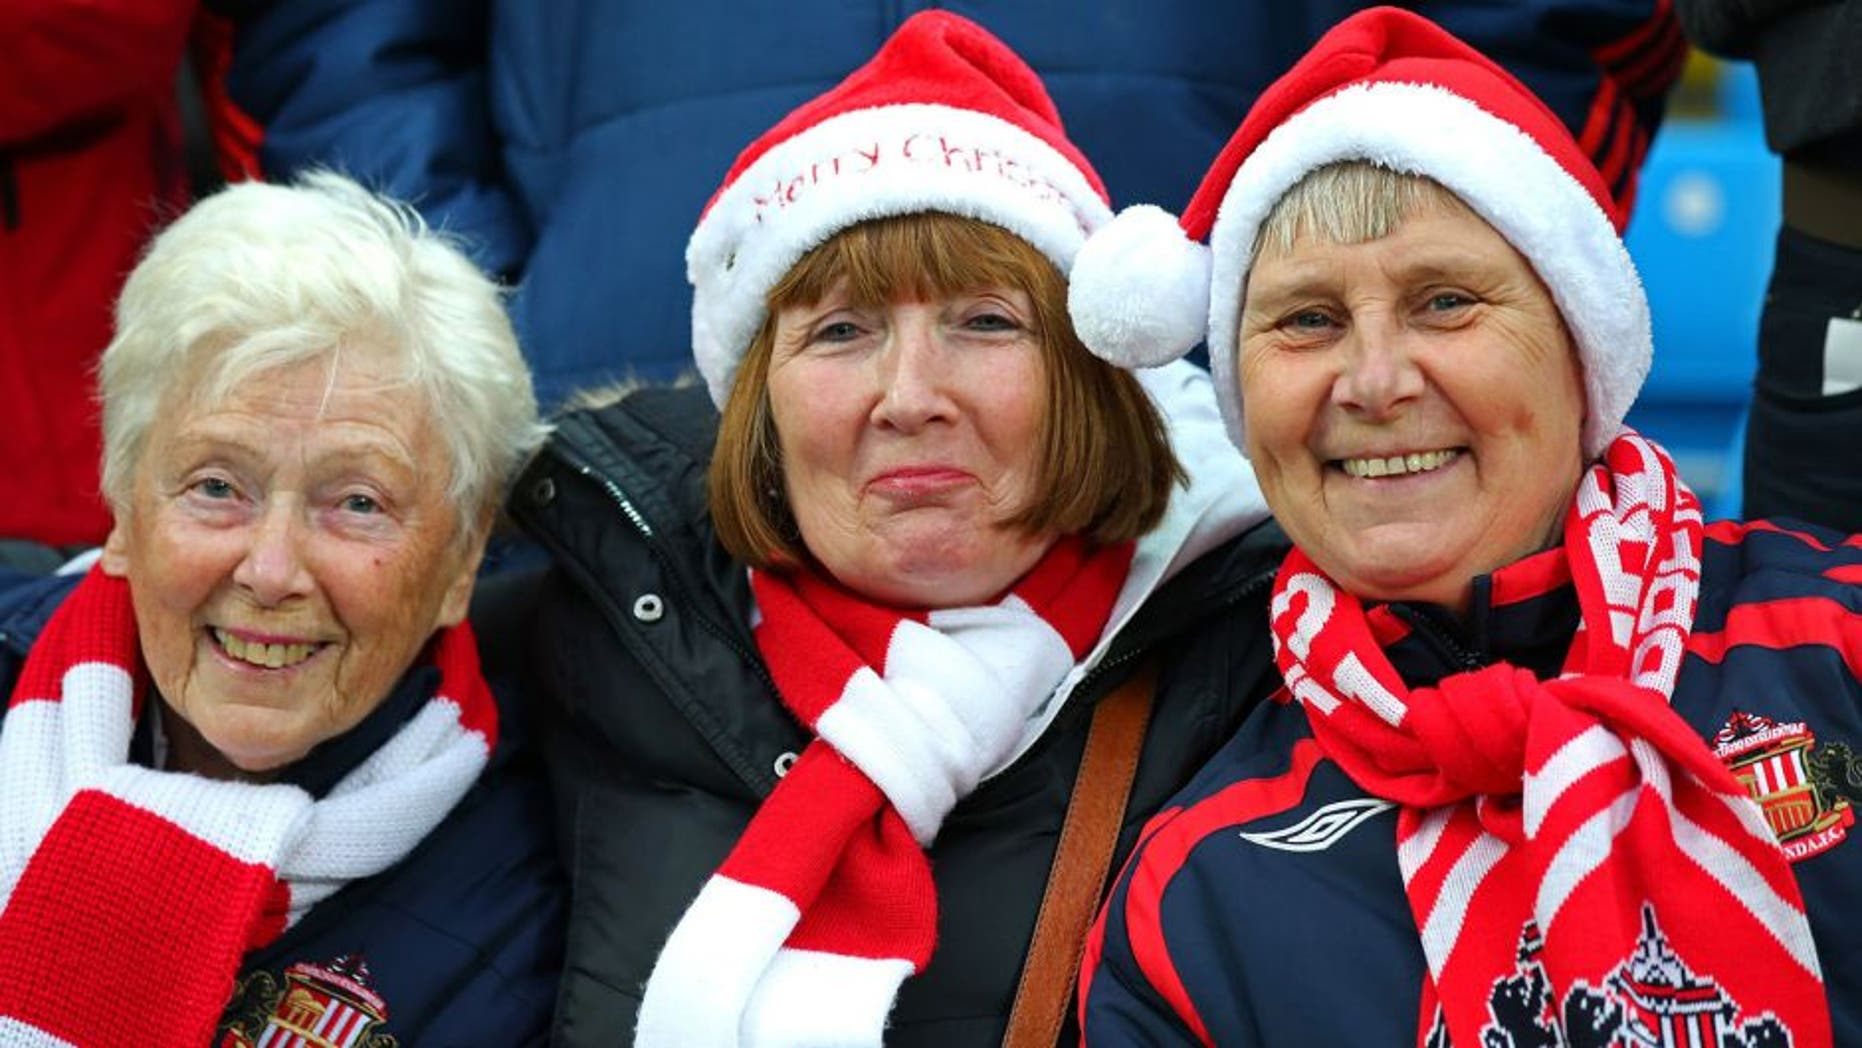 MANCHESTER, ENGLAND - DECEMBER 26: Sunderland fans enjoy the atmosphere during the Barclays Premier League match between Manchester City and Sunderland at the Etihad Stadium on December 26, 2015 in Manchester, England. (Photo by Alex Livesey/Getty Images)